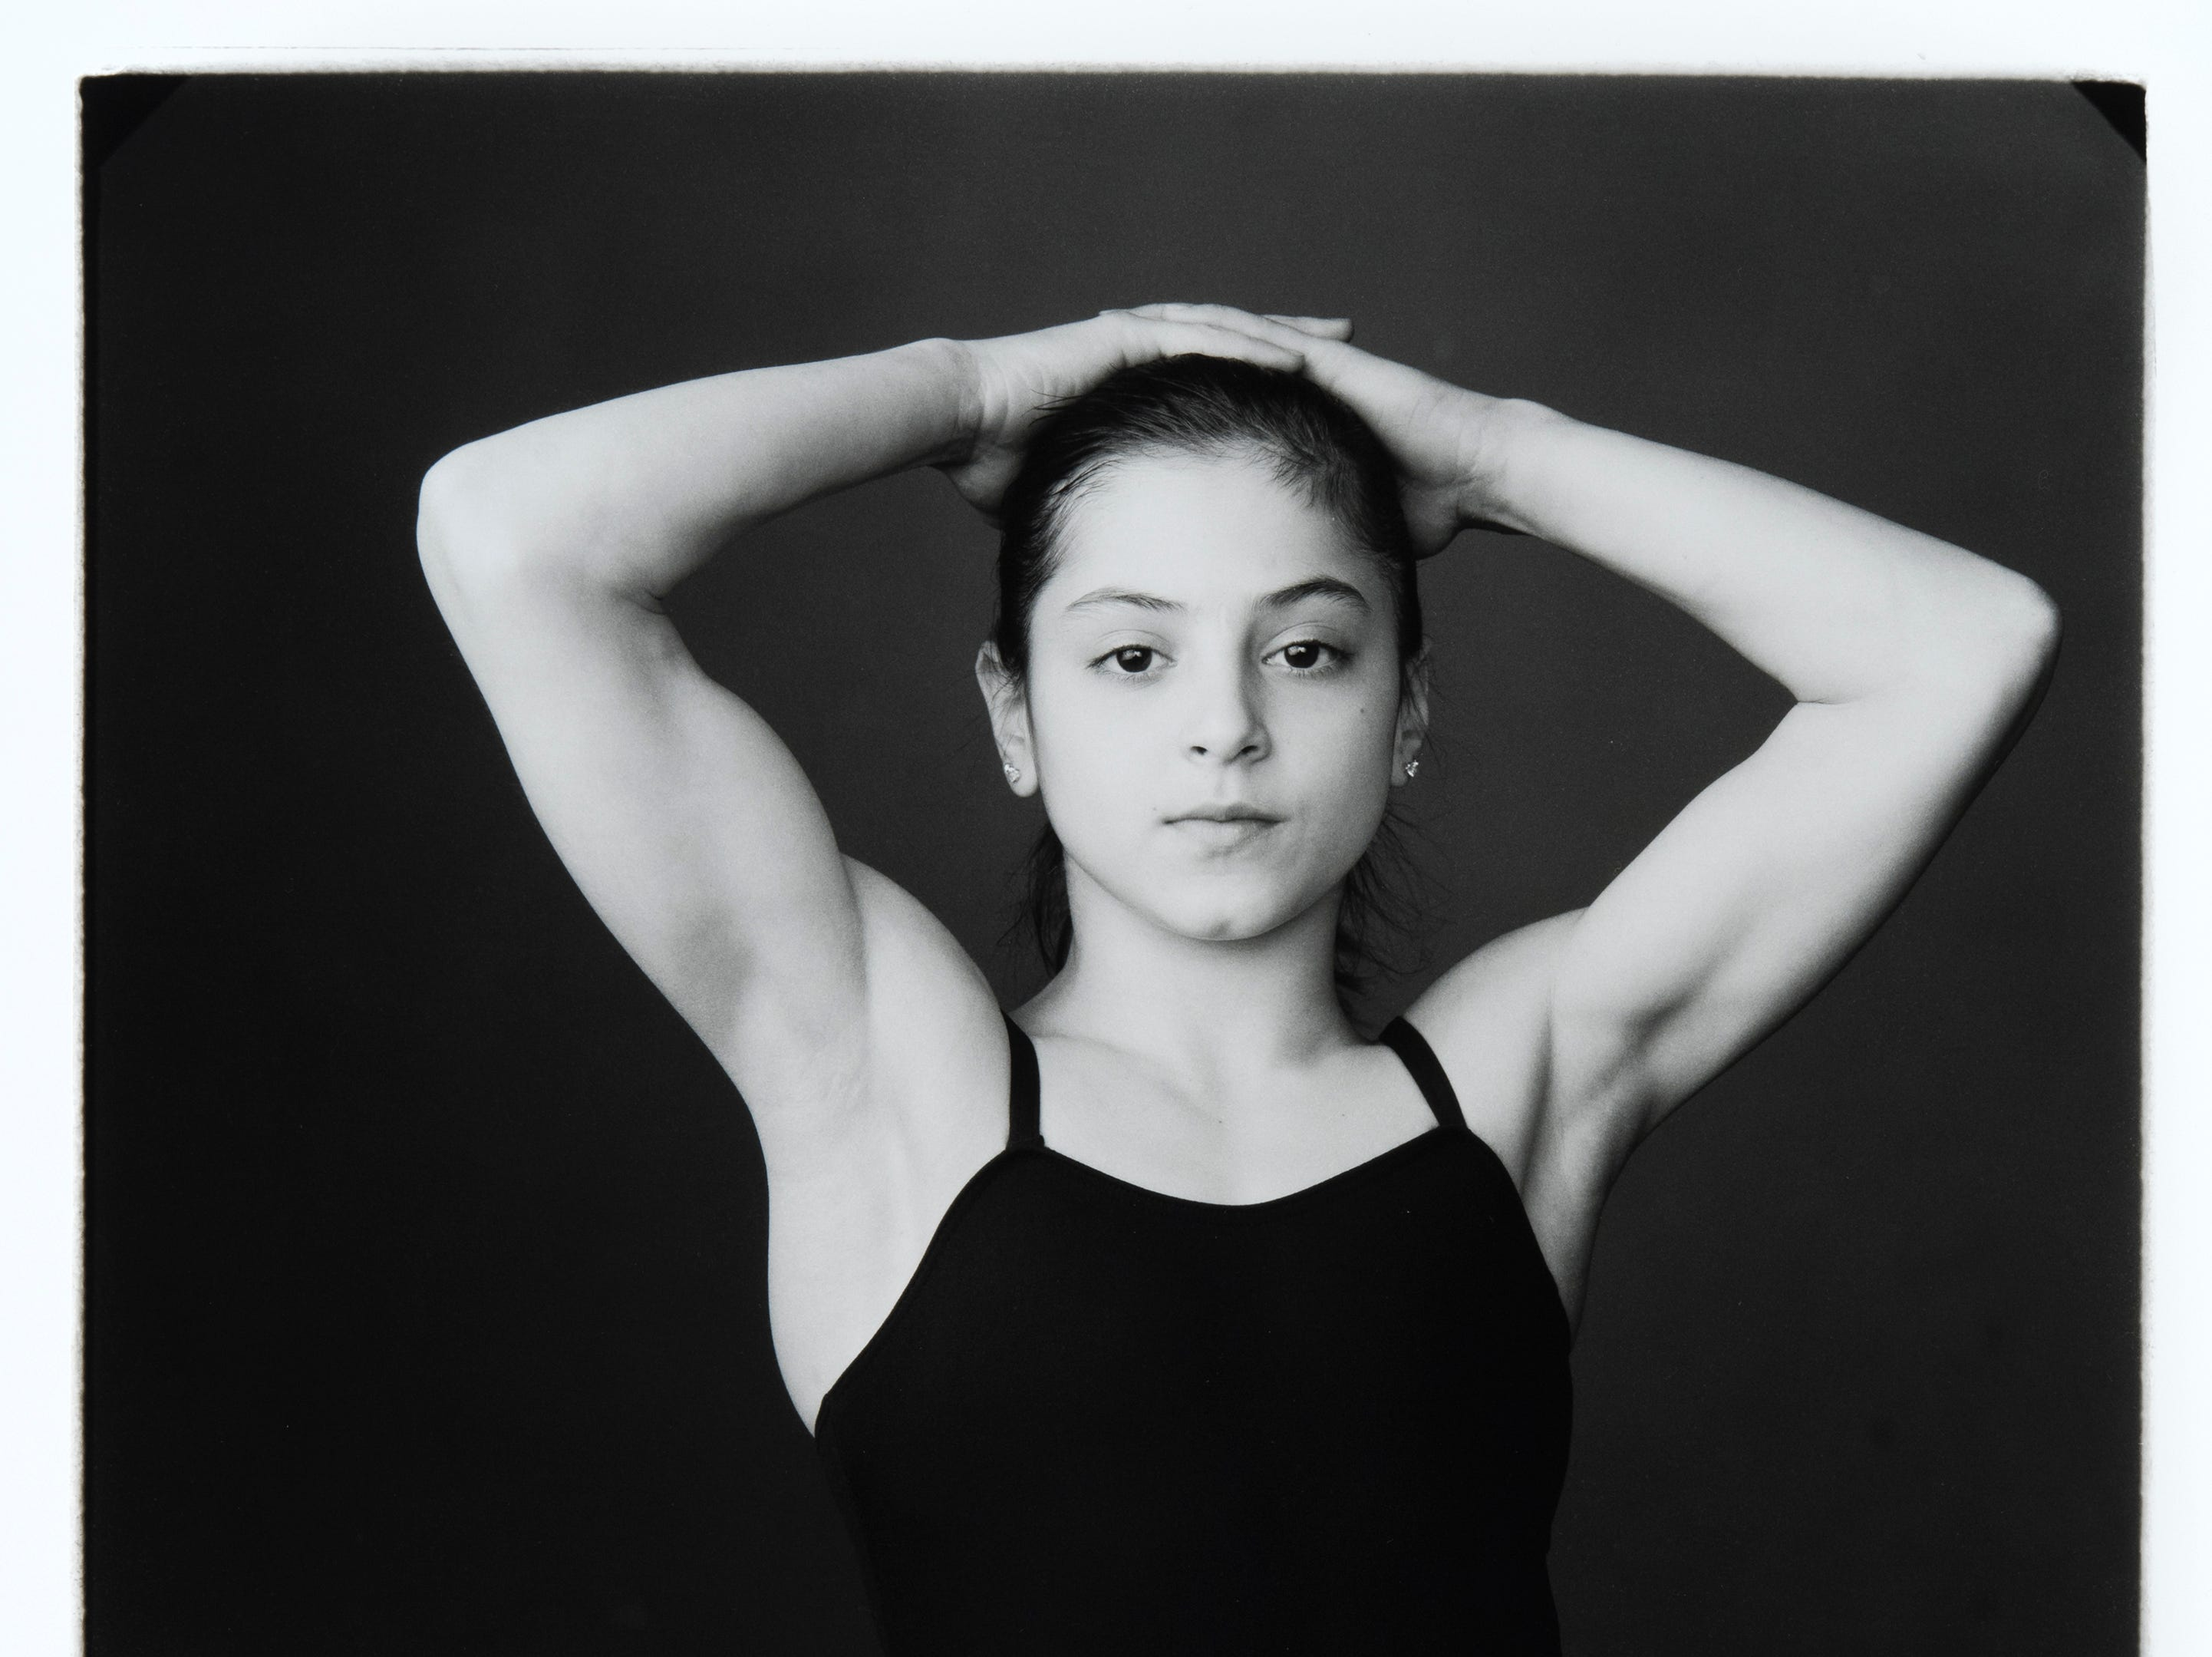 Celebrity Culture: Annie Leibovitz Dominique Moceanu, Houston, Texas, 1996  Gelatin silver print on paper  Collection Zimmerli Art Museum at Rutgers  Gift of Anne and Arthur Goldstein  Photo Peter Jacobs